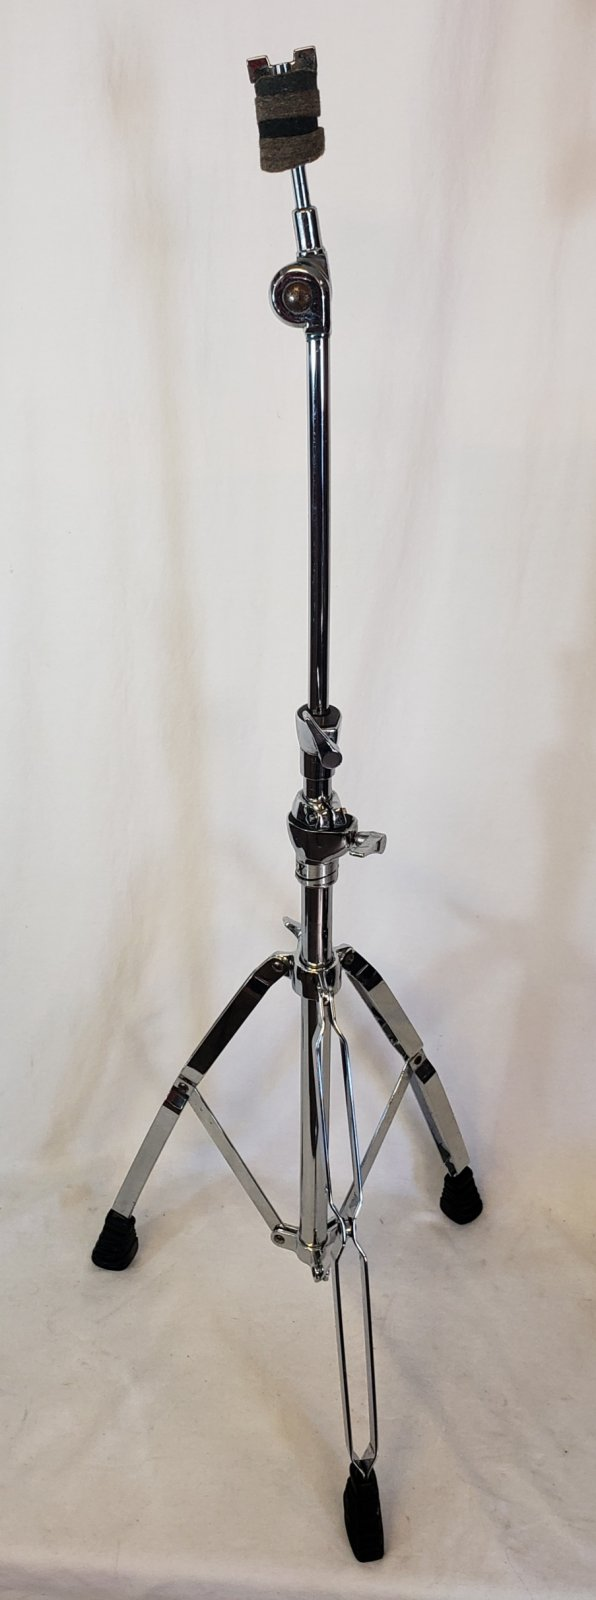 USED PEARL CYMBAL STAND